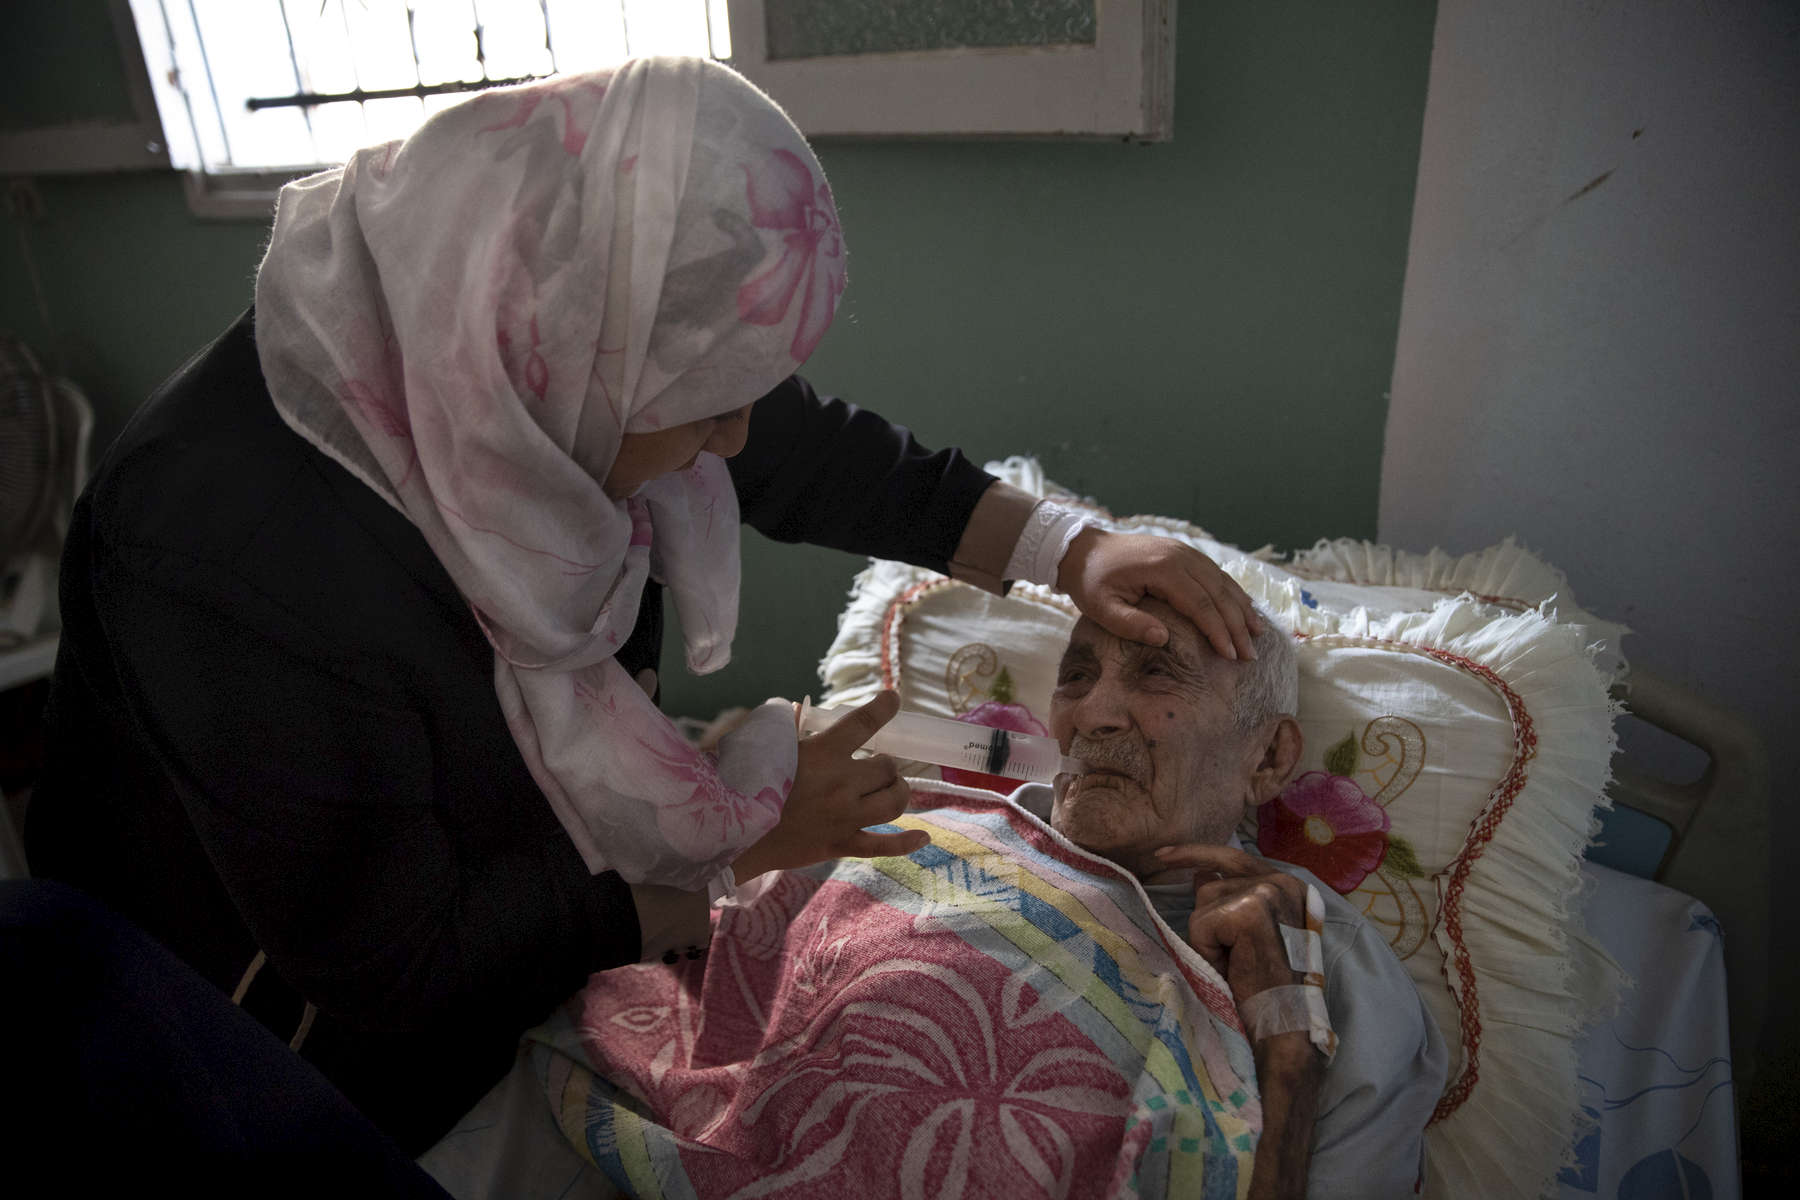 BEIT LAHIA, GAZA STRIP- MAY 27,2018Fadel Al-Zain, 70, is taken care of by his daughter Hana' Al-Zain on May 27,2018 in Beit Lahia, Gaza strip. He was injured in height of the 2014 offensive when bombing hit near his home. He is now paralyzed, quadriplegic, and can't function on his own after he suffered internal bleeding in his brain.The world's largest open air prison along the Israel-Gaza border. Everyone is well aware that Gaza's two million inhabitants are trapped in a cycle of violence and poverty, created by policies and political decisions on both sides. The problems and complications affecting Gaza today are overwhelming. The world, seemingly accustomed to the suffering of the Gazan people turns a blind eye. (Photo by Paula Bronstein )